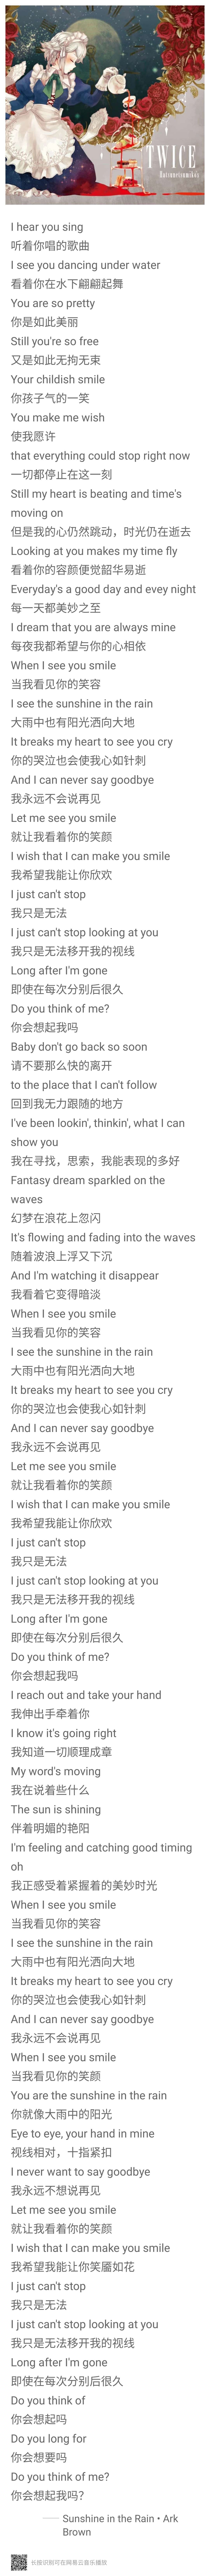 【音乐】Sunshine in the Rain【咲夜】